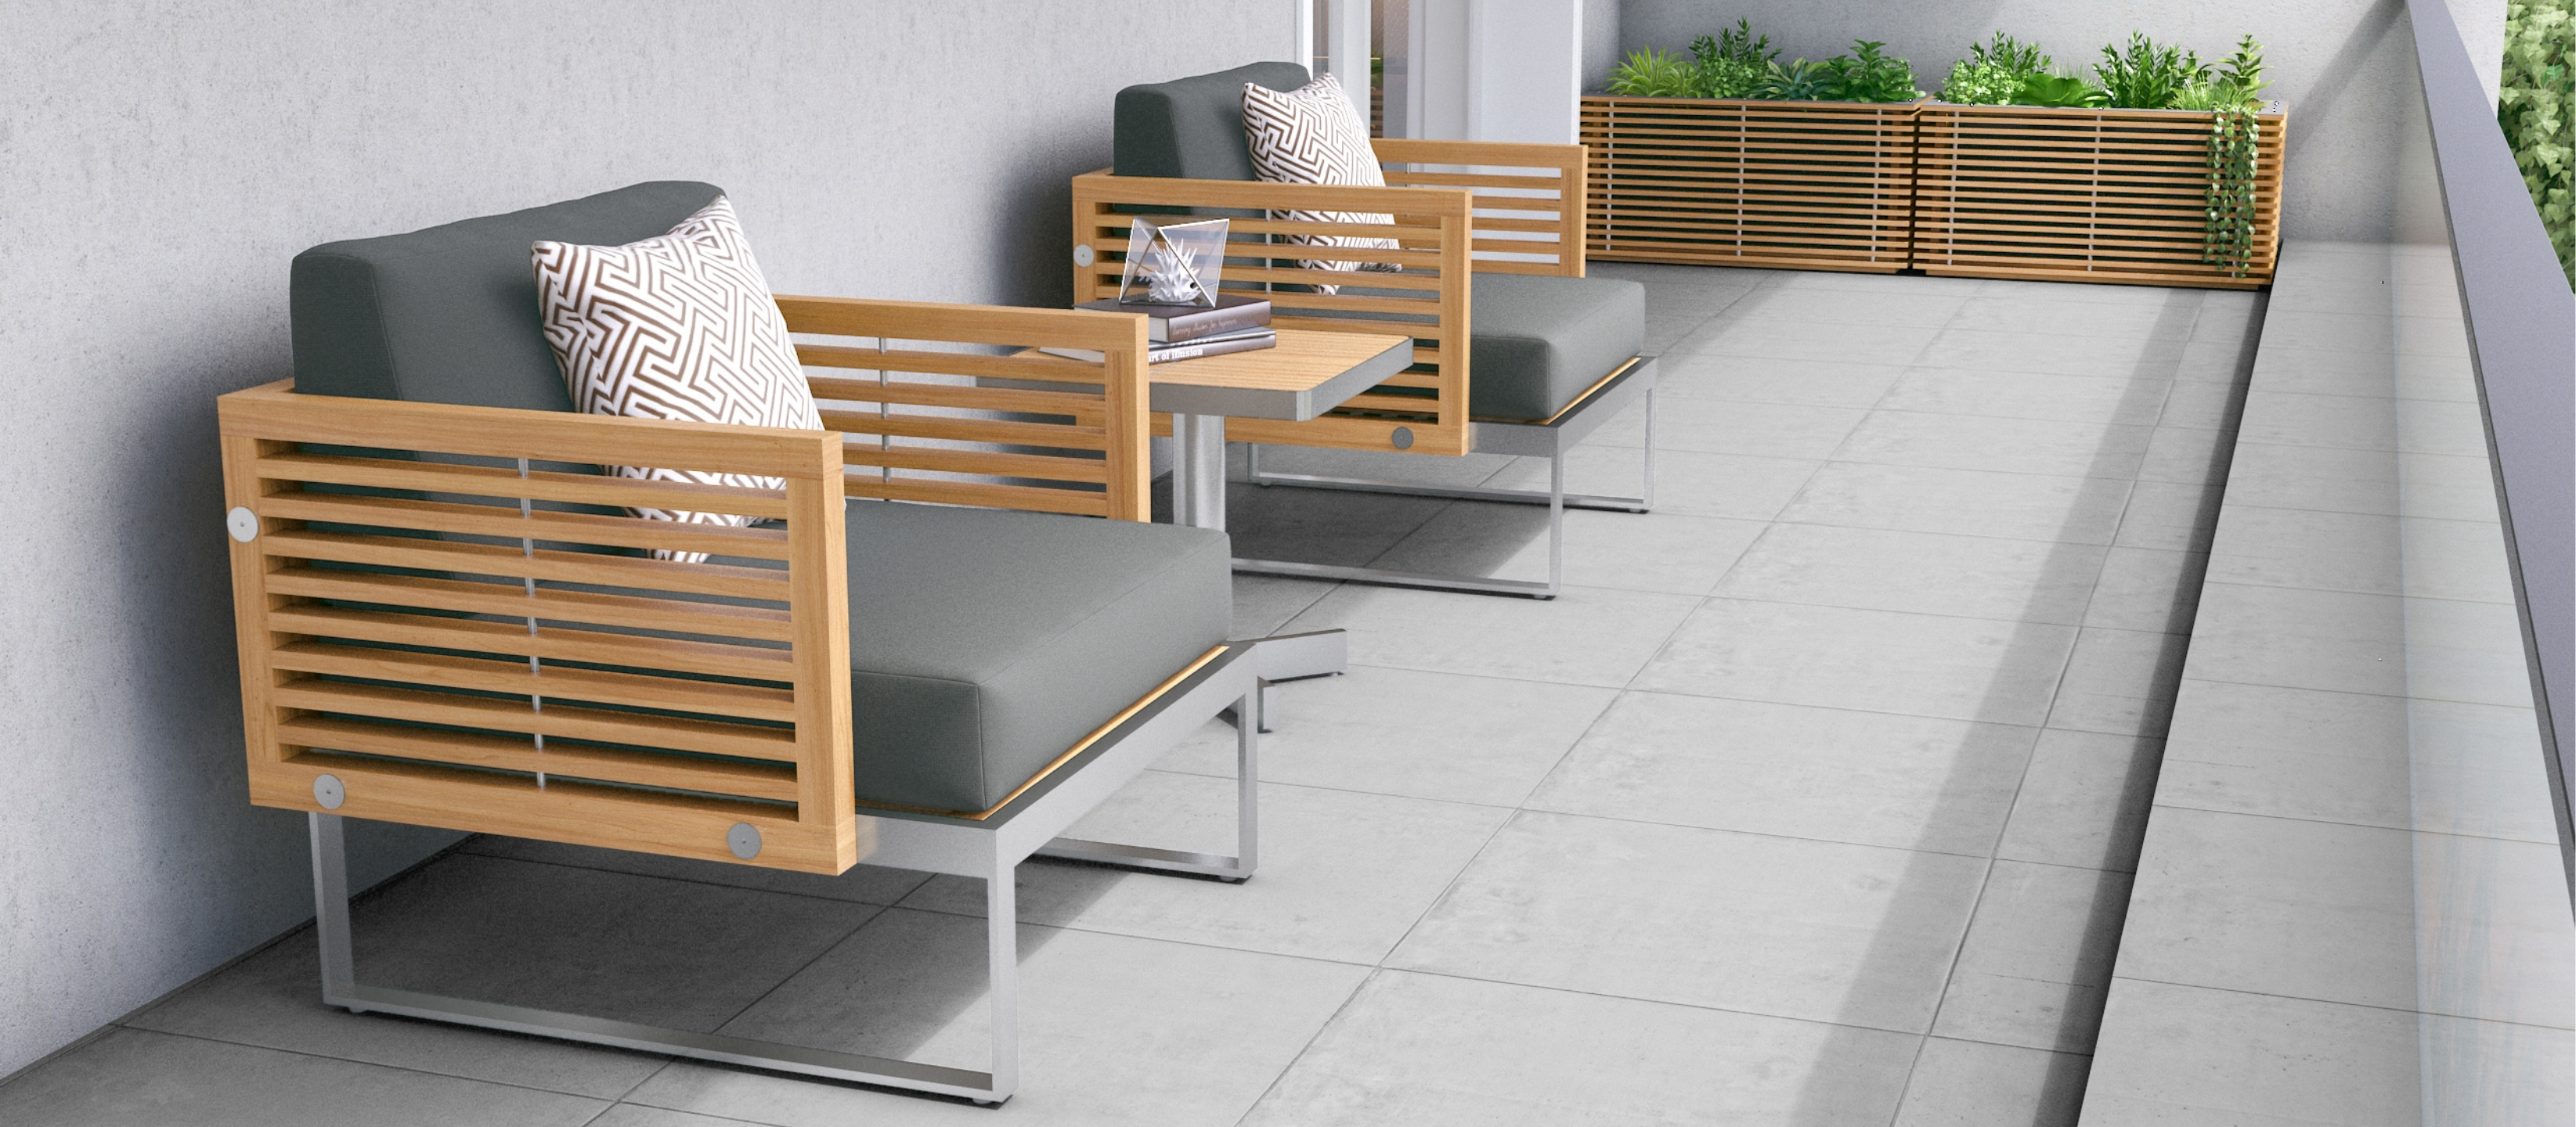 Lounge Design for Your Small Balcony